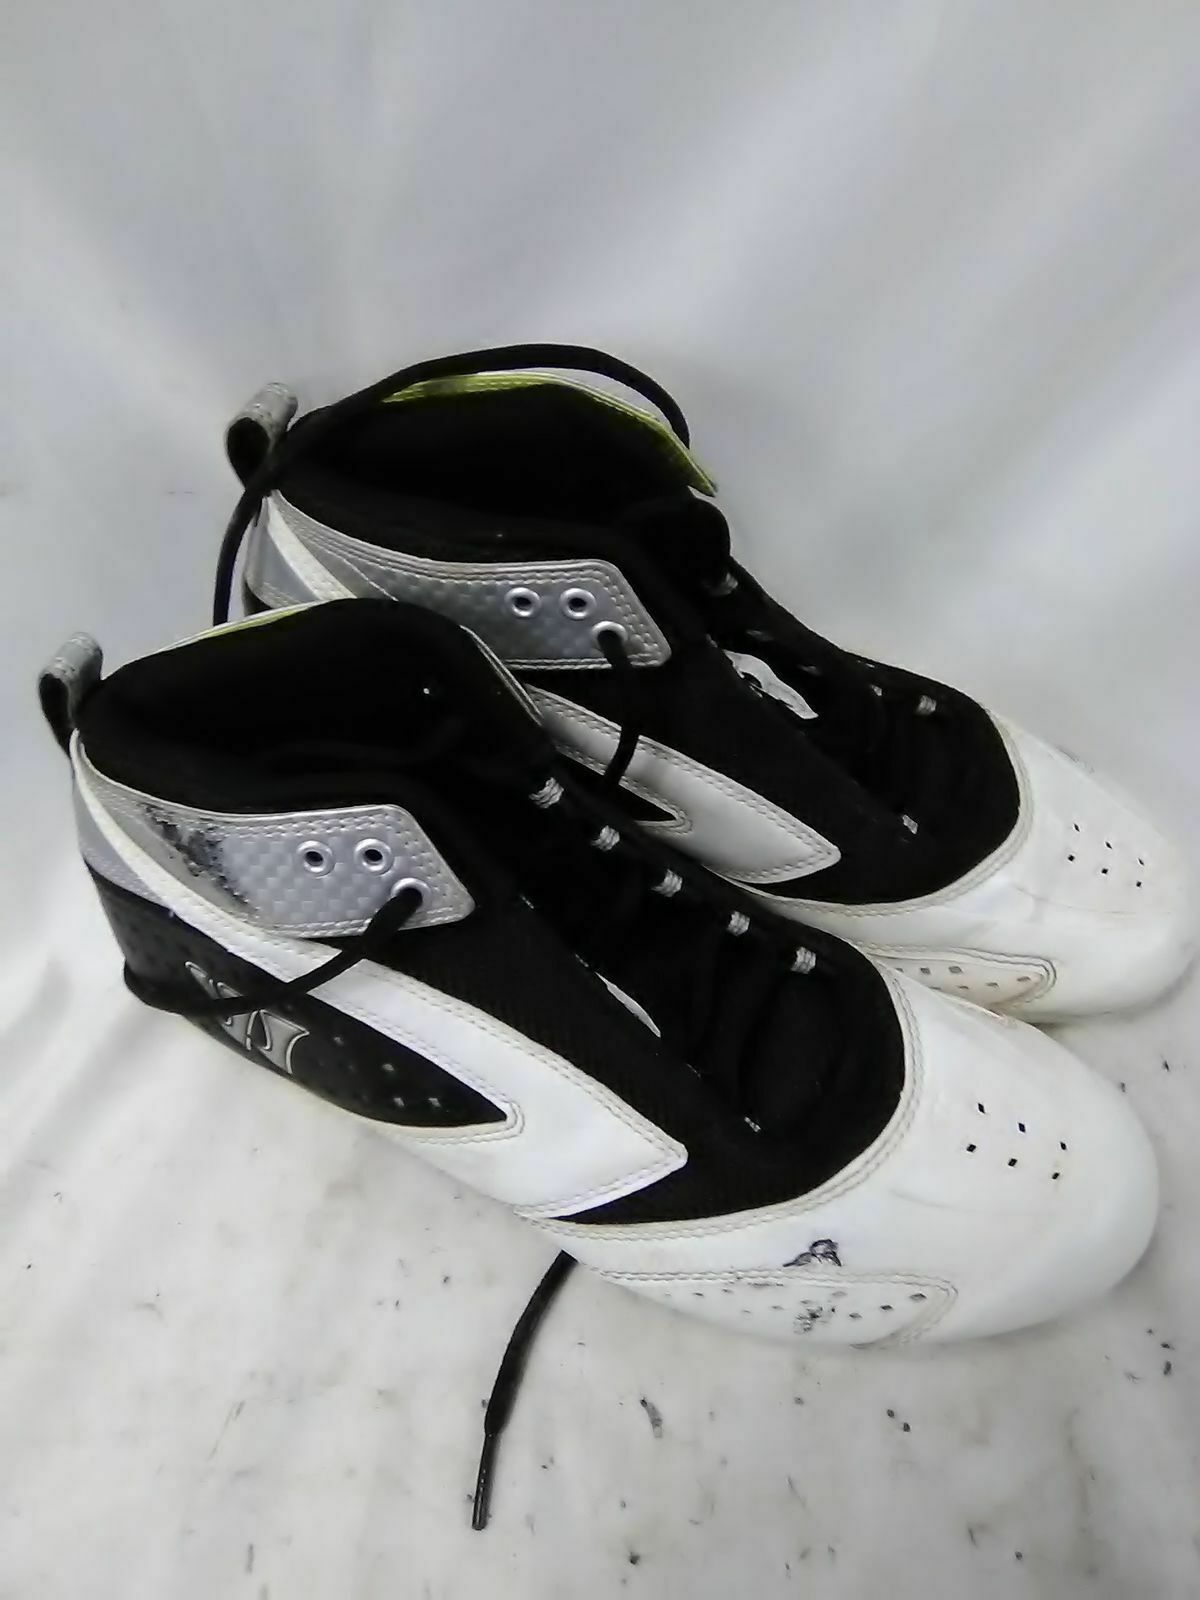 Primary image for Warrior 8.5 Size Lacrosse Cleats